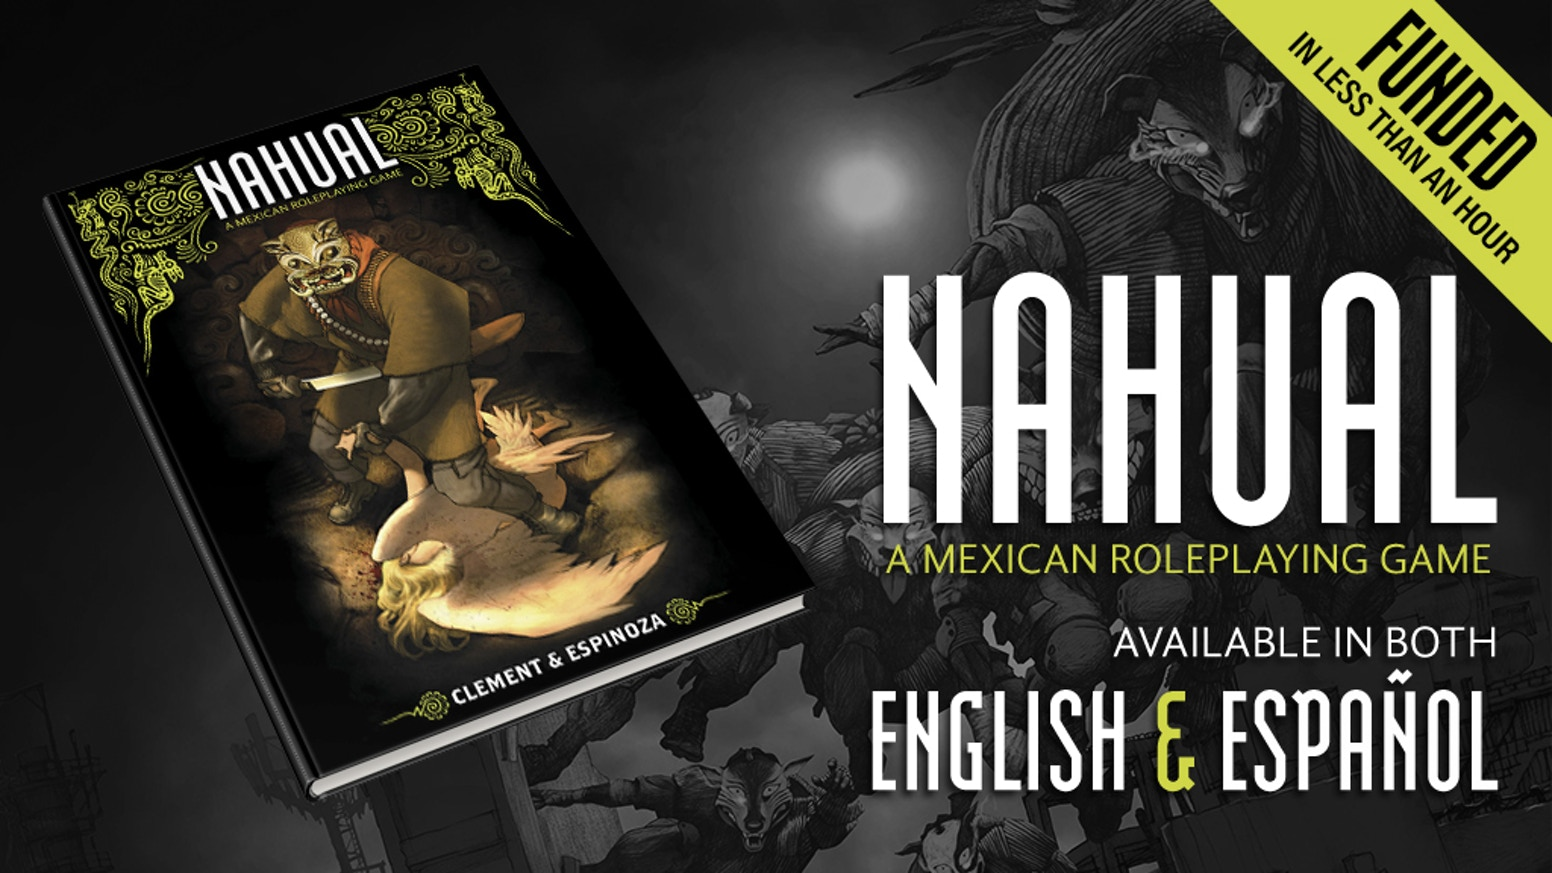 Nahual: A Tabletop RPG of Mexican Urban Fantasy by MIGUEL